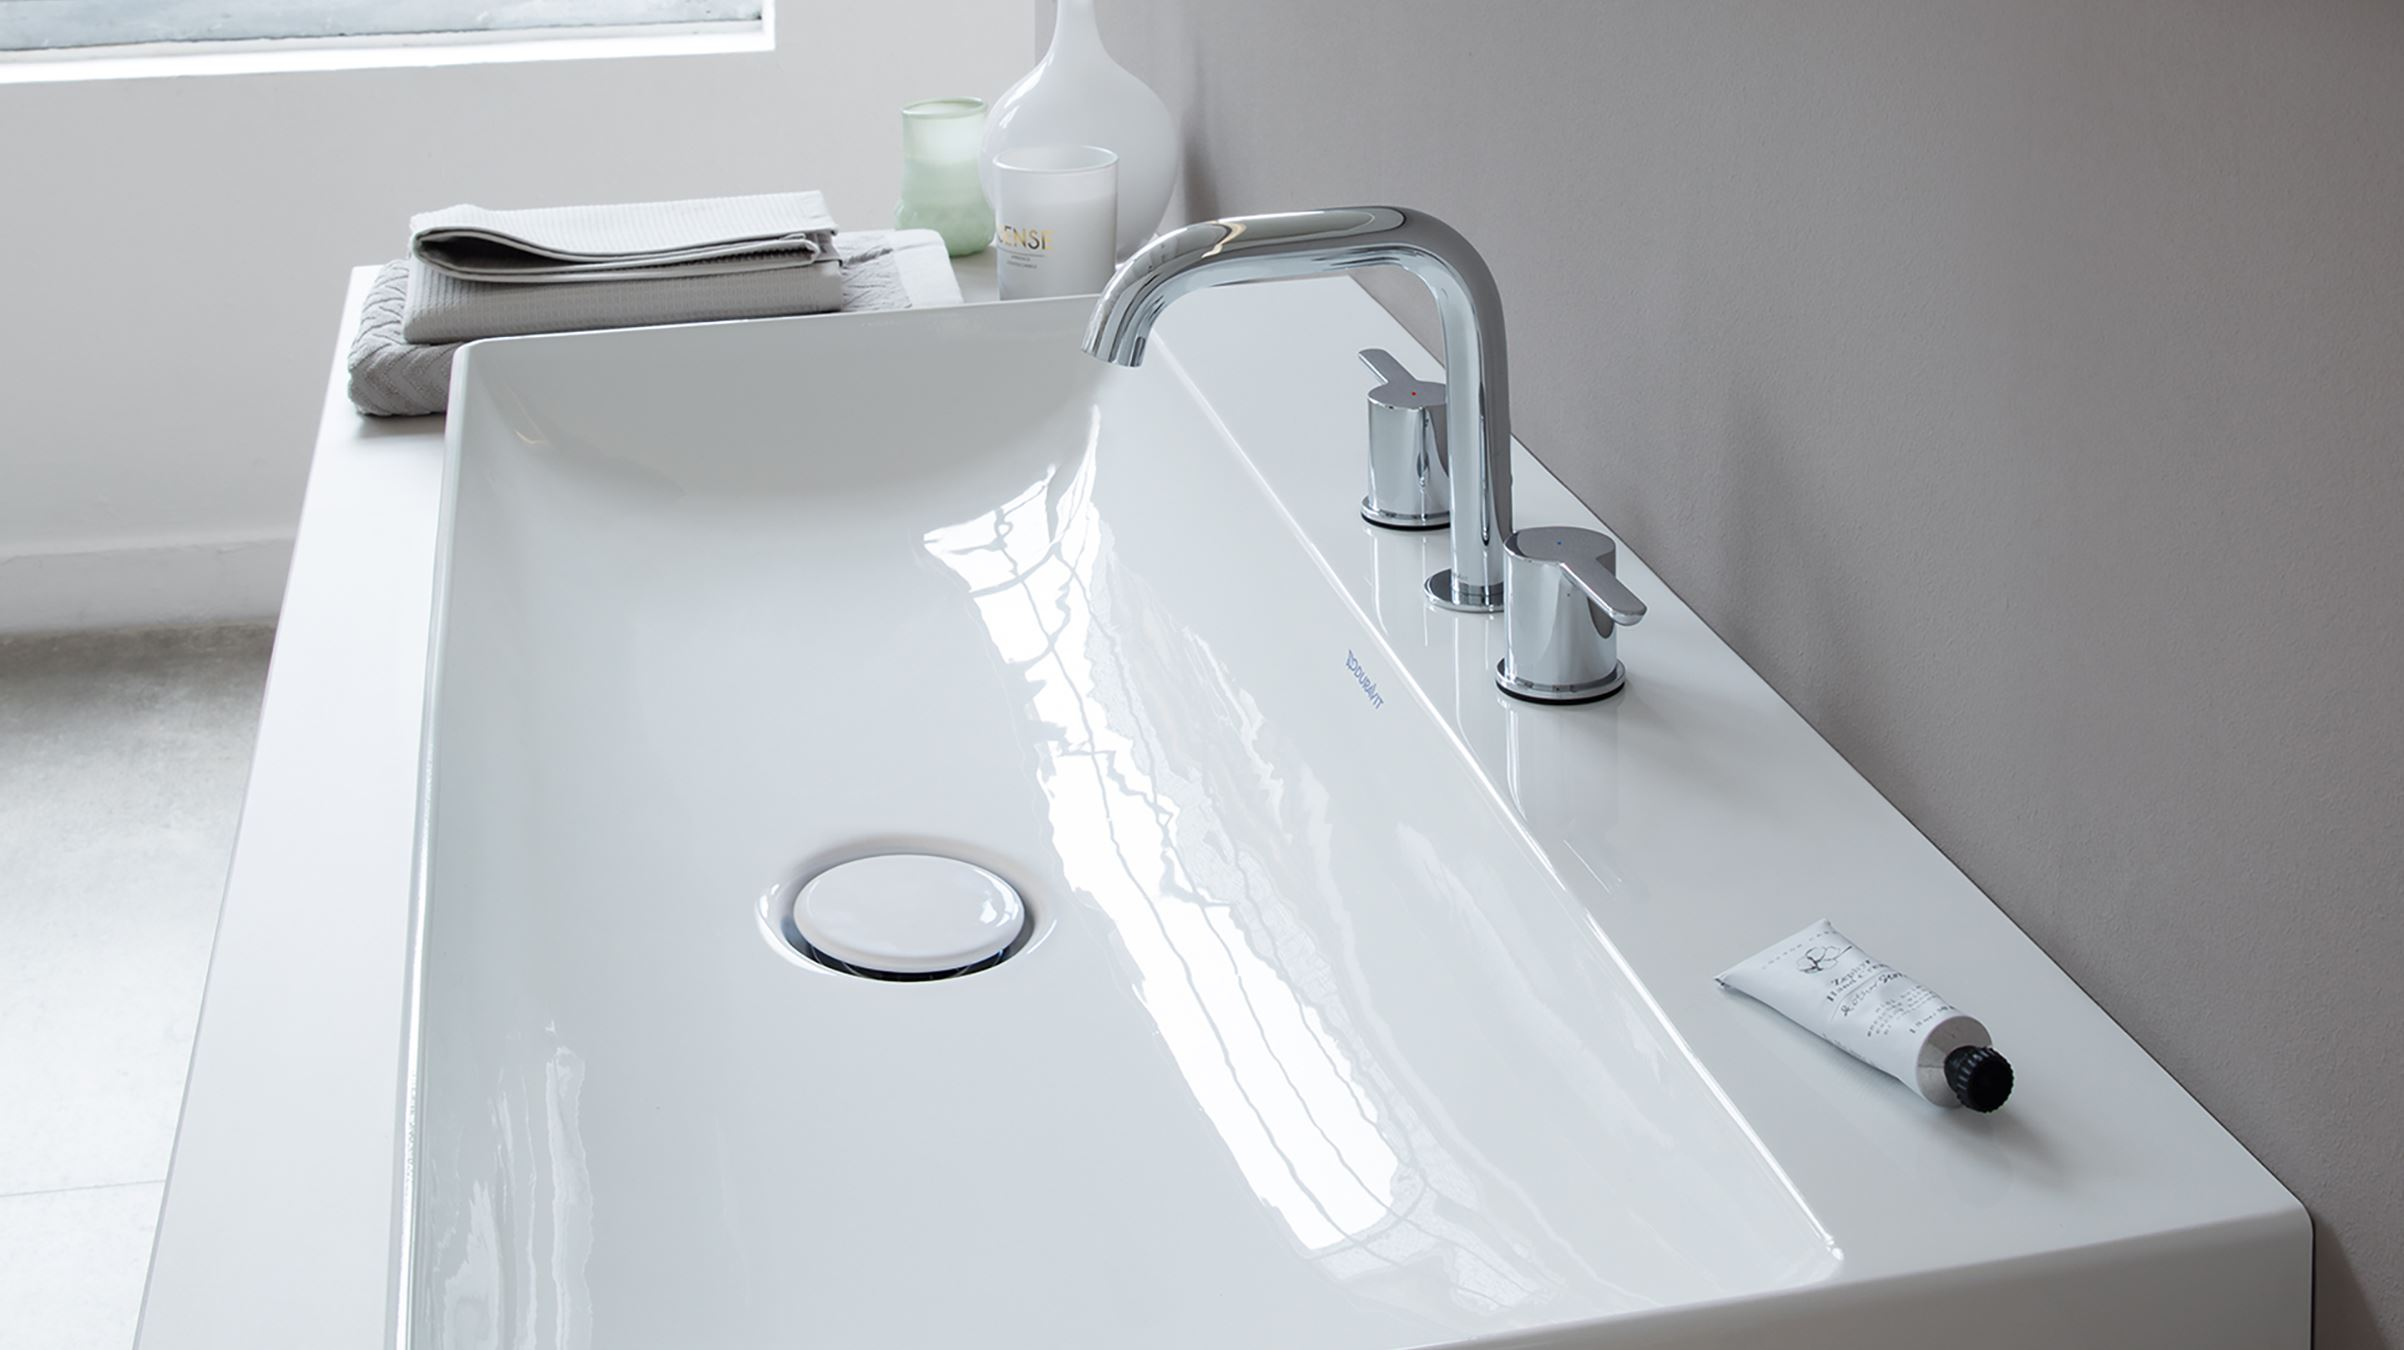 C1-by-Kurt-Merki-Jr_Duravit_03.jpg